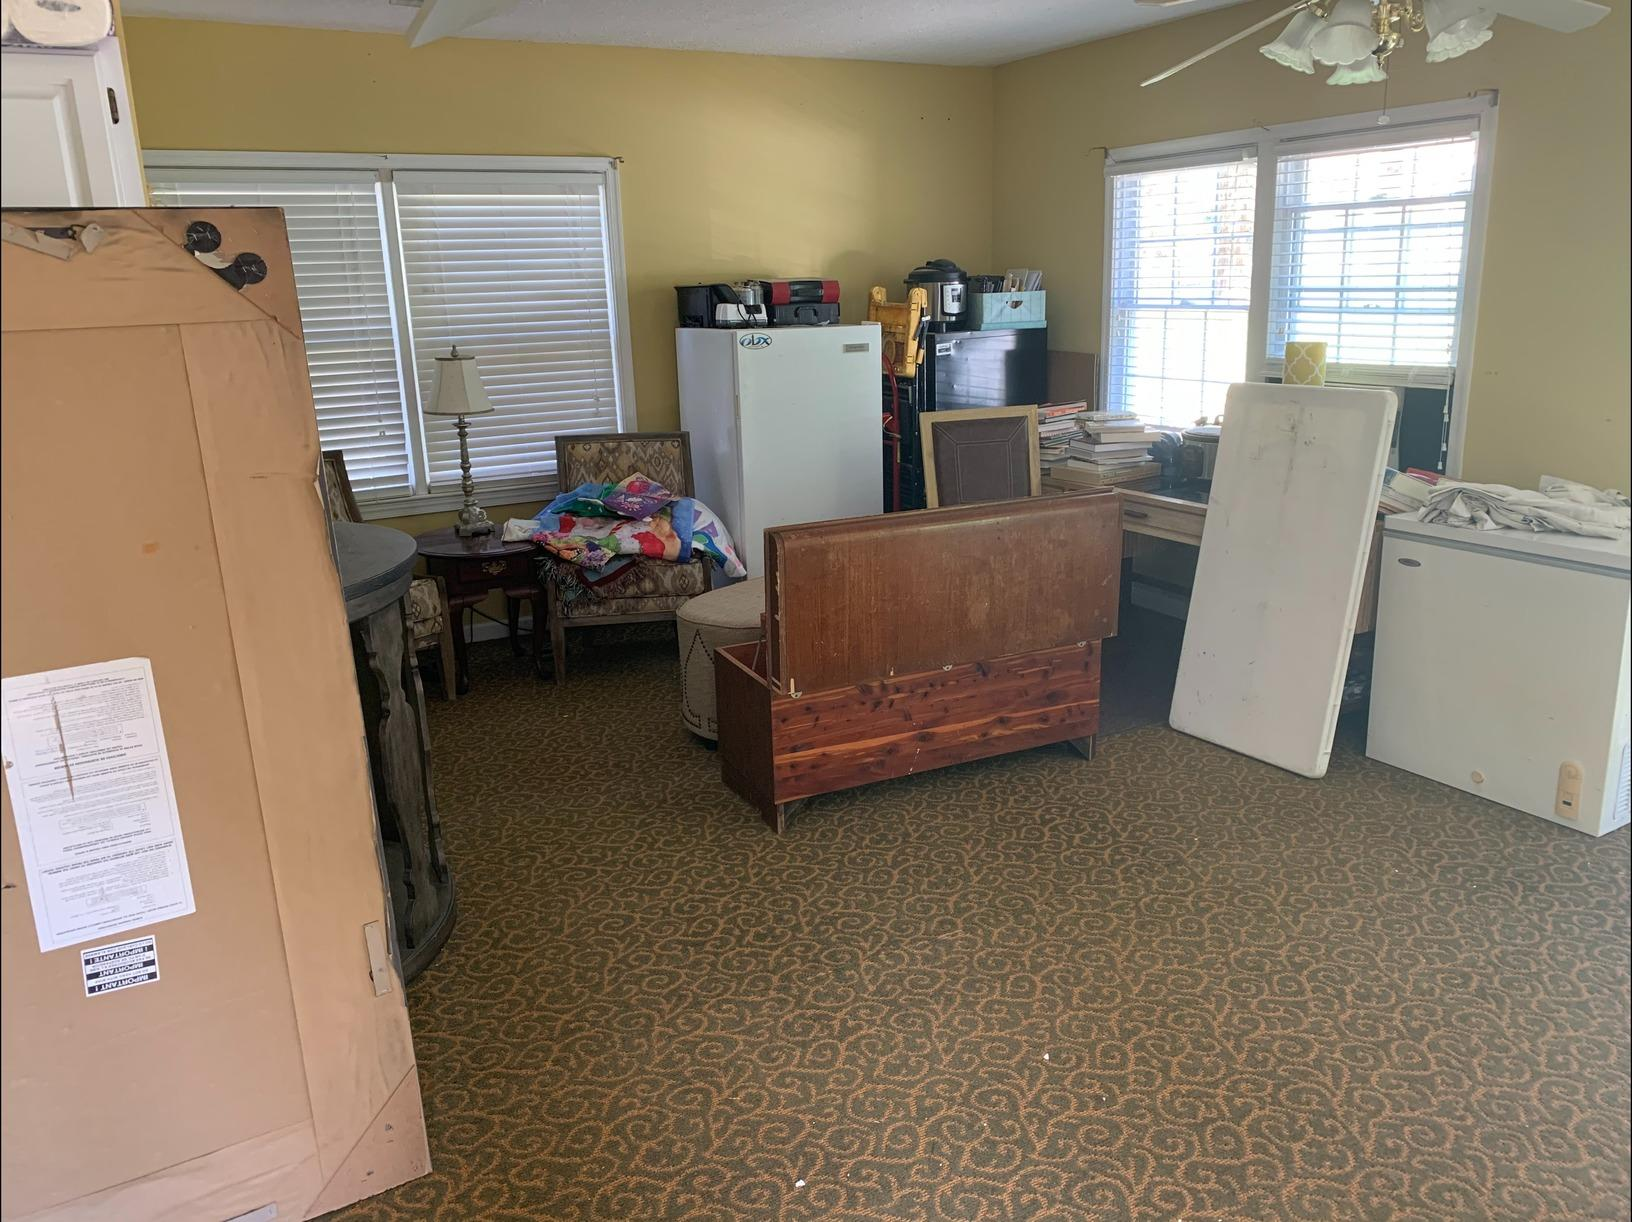 Decluttering & Furniture Removal in Williamsburg, VA - After Photo